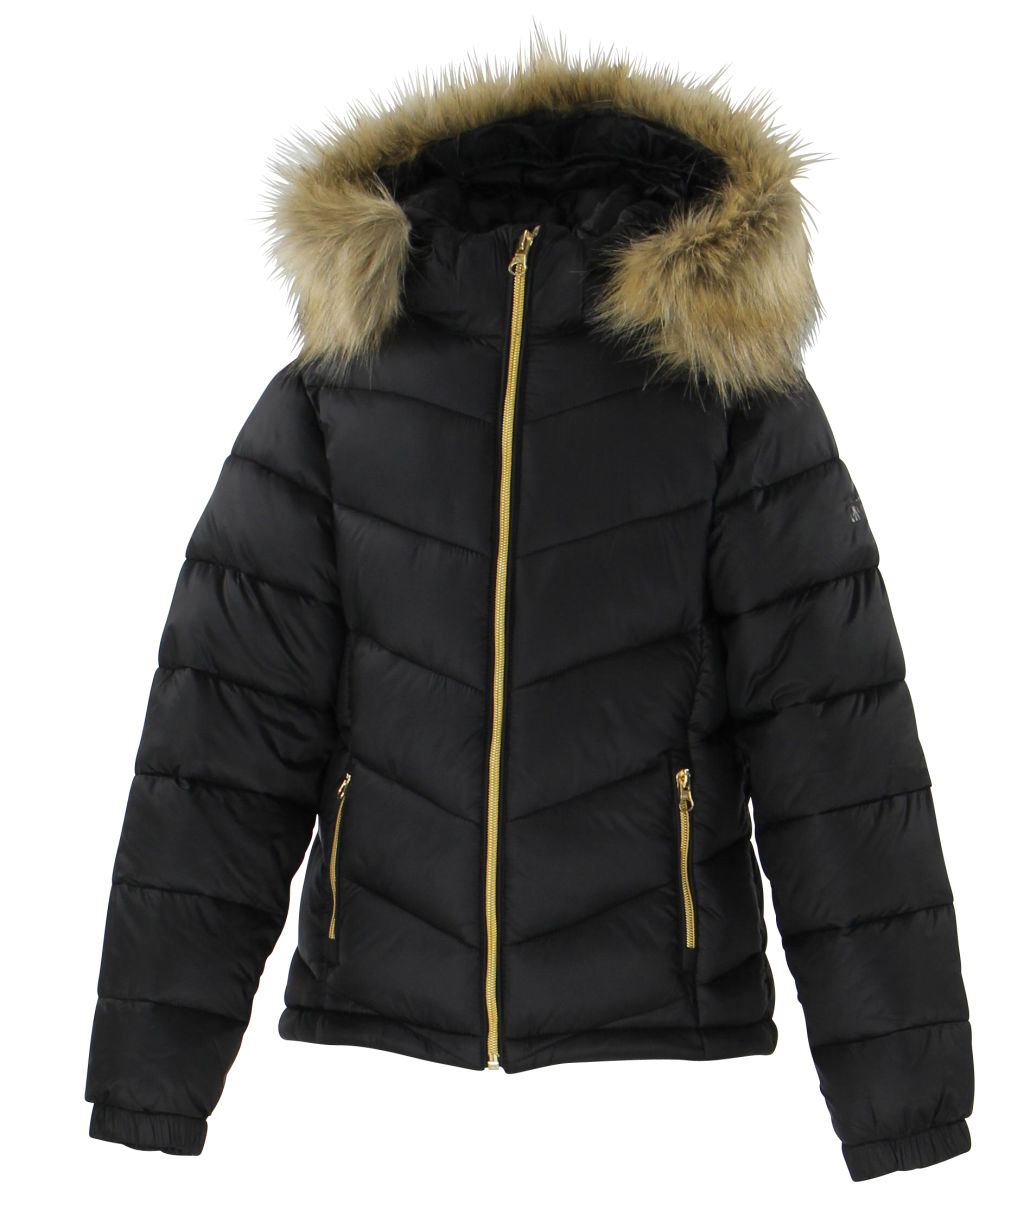 McKINLEY Marilyn Jacket Jr